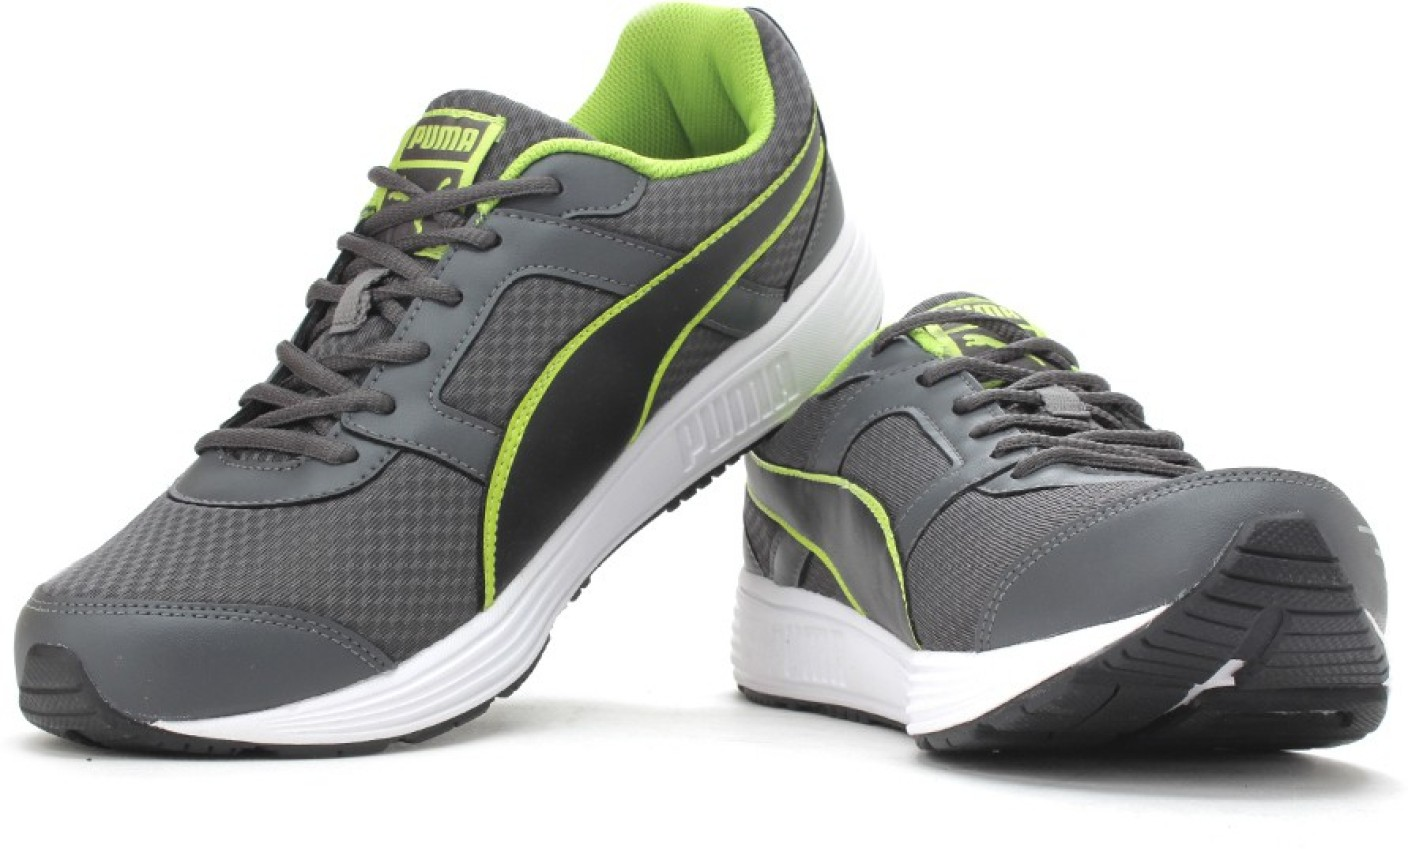 Affordable Comfortable Running Shoes